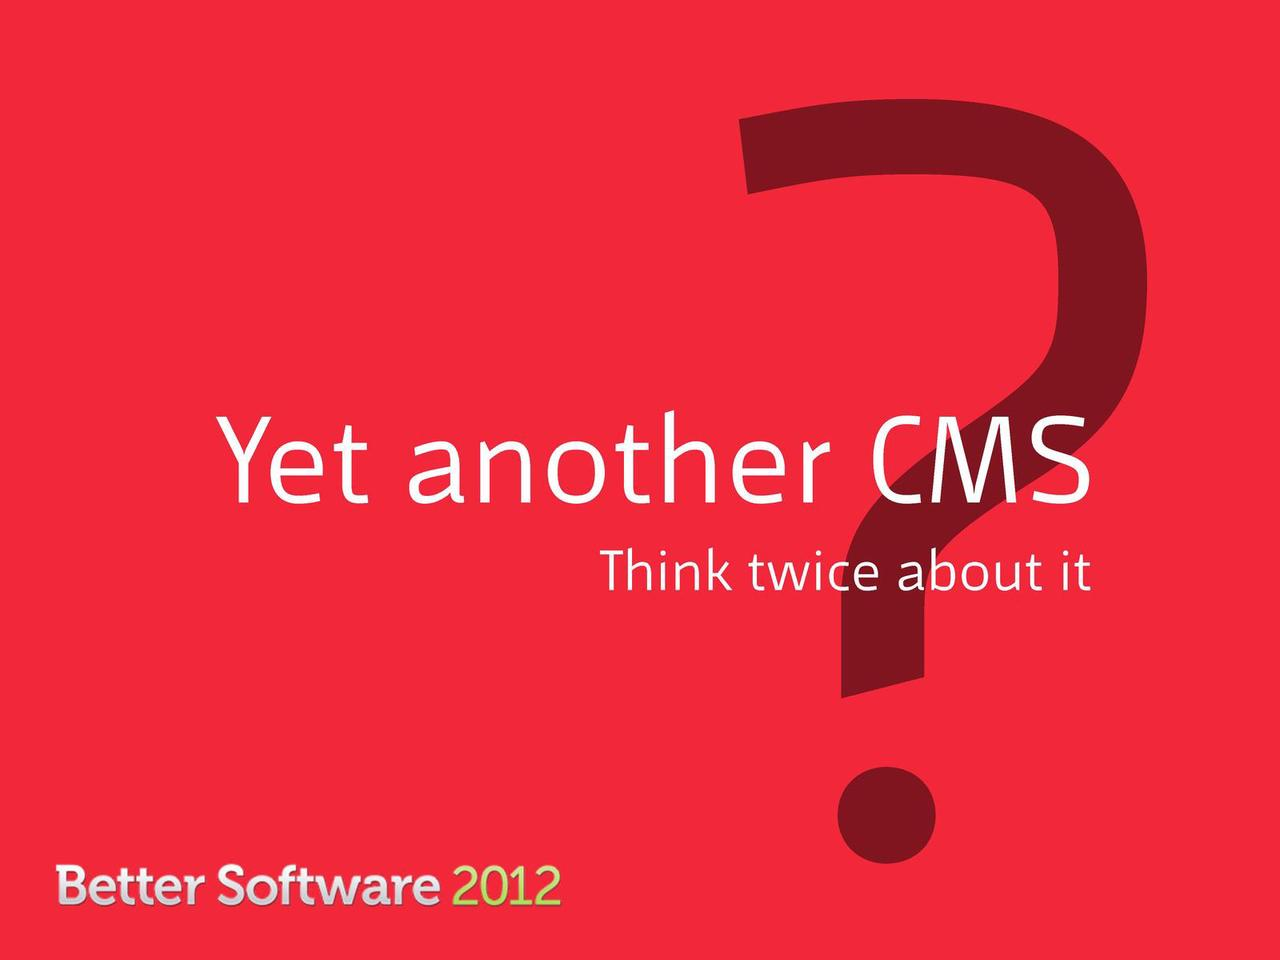 Yet another CMS? Think twice about it.